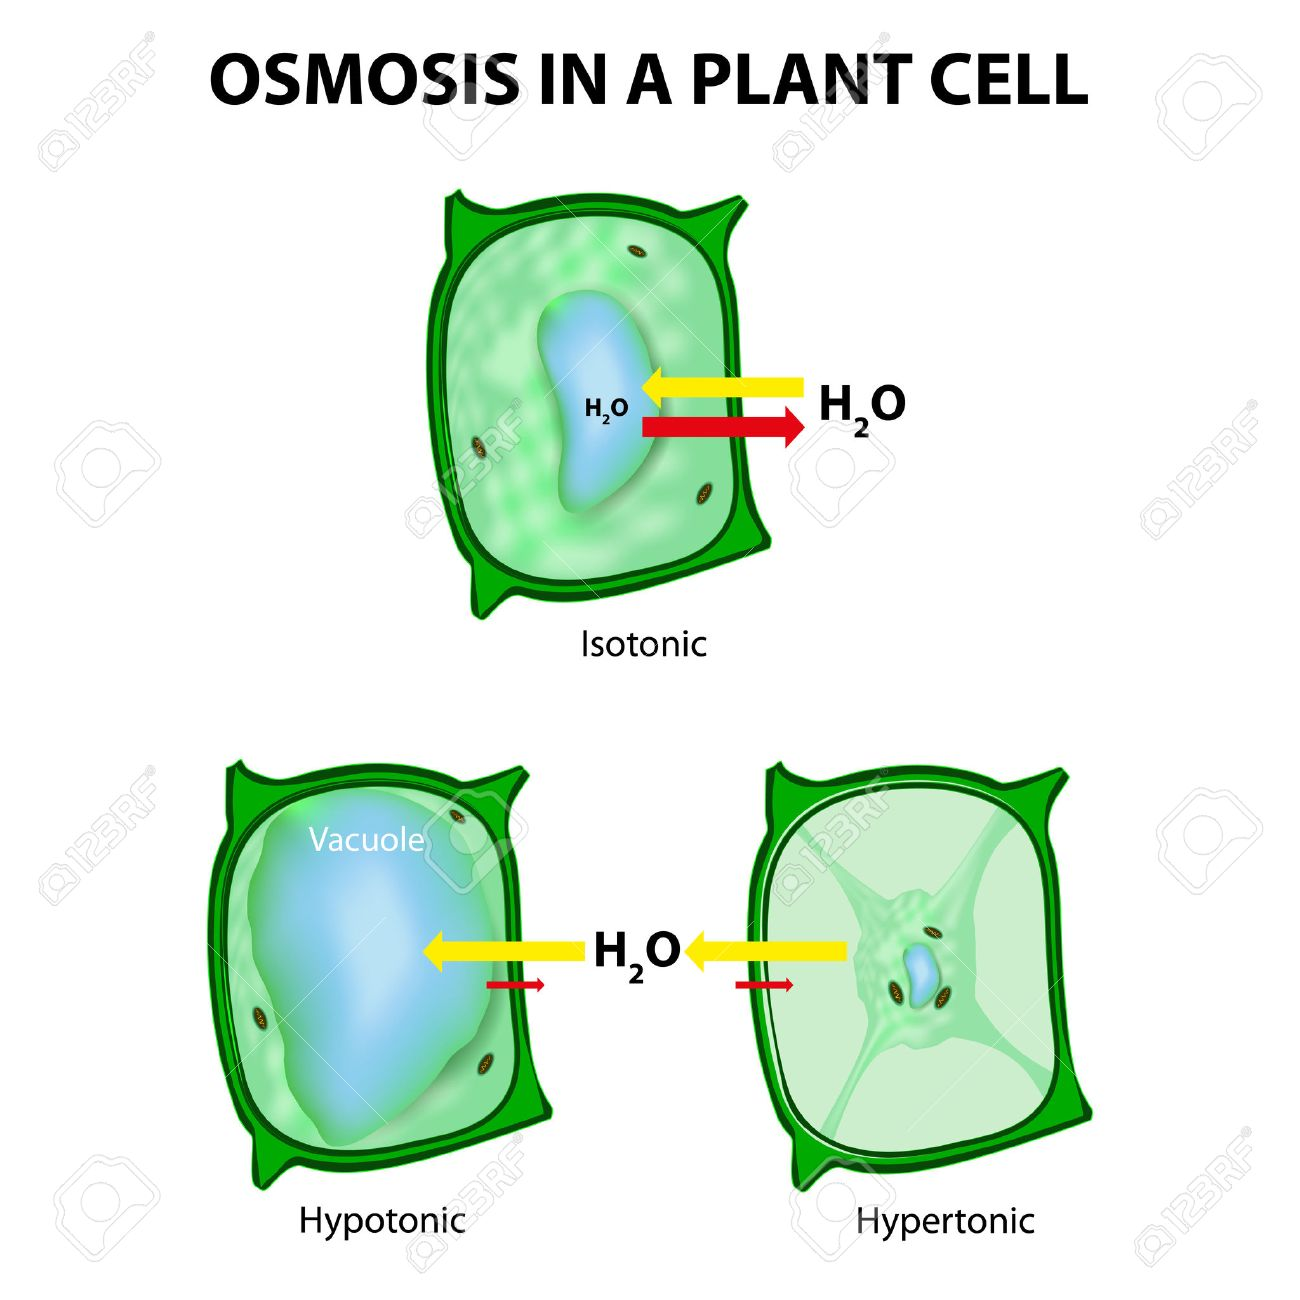 Plant Cell Stock Photos Royalty Free Images Osmosis In A 3 Types Of Tonicity Hypotonic Hypertonic And